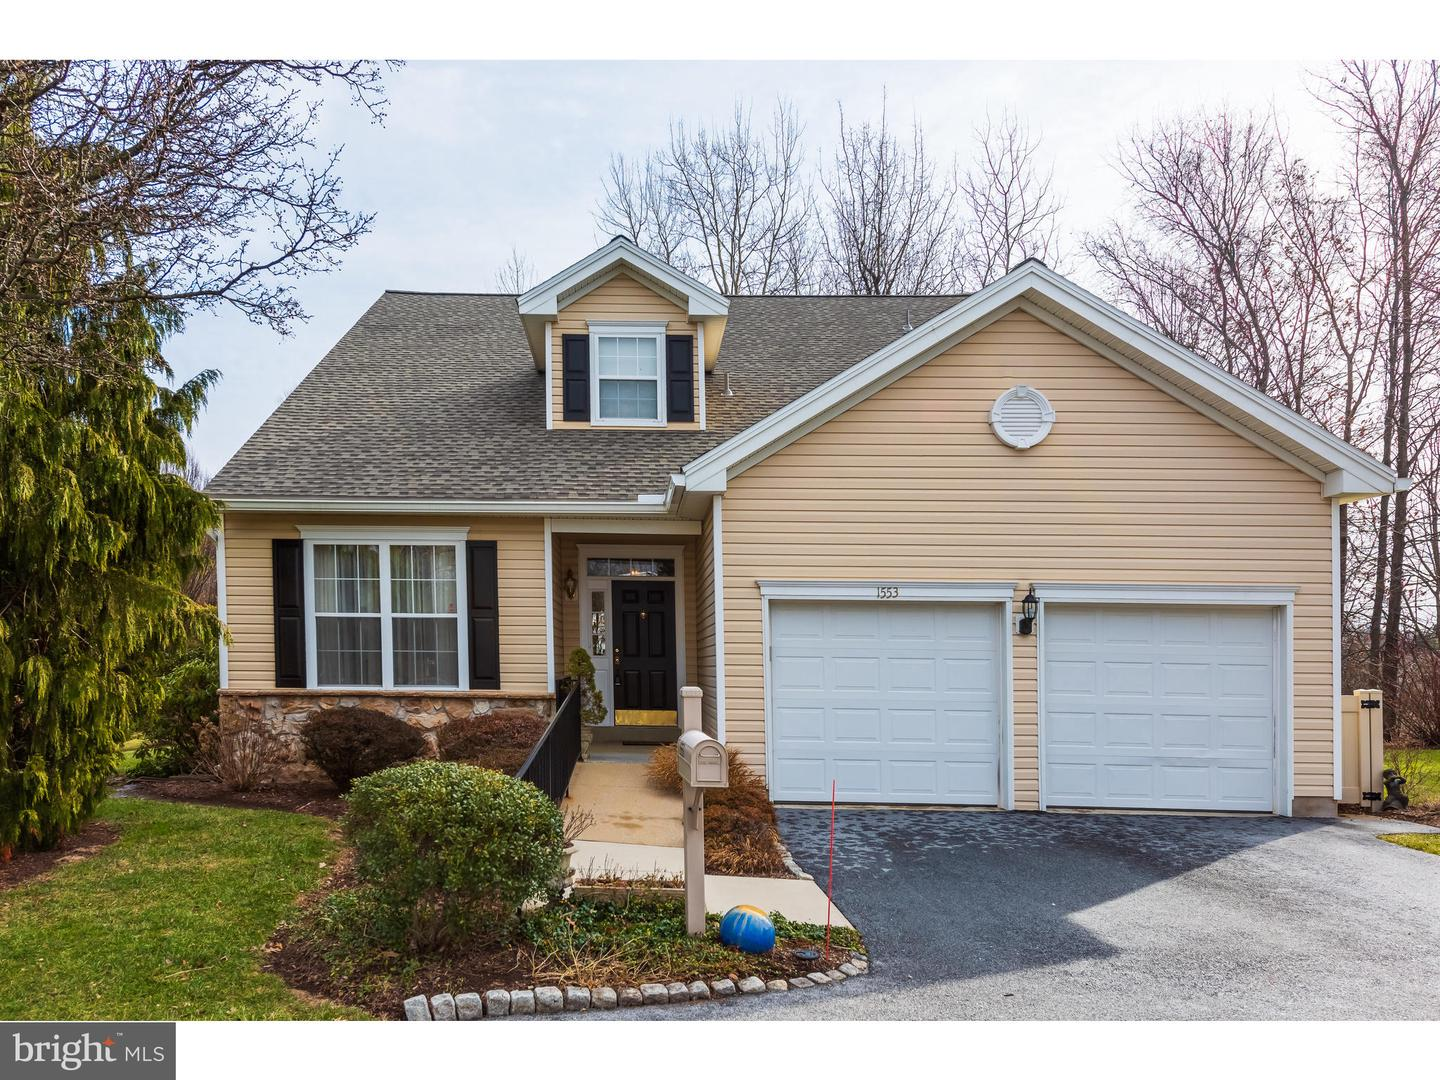 1553 Ulster Circle West Chester, PA 19380